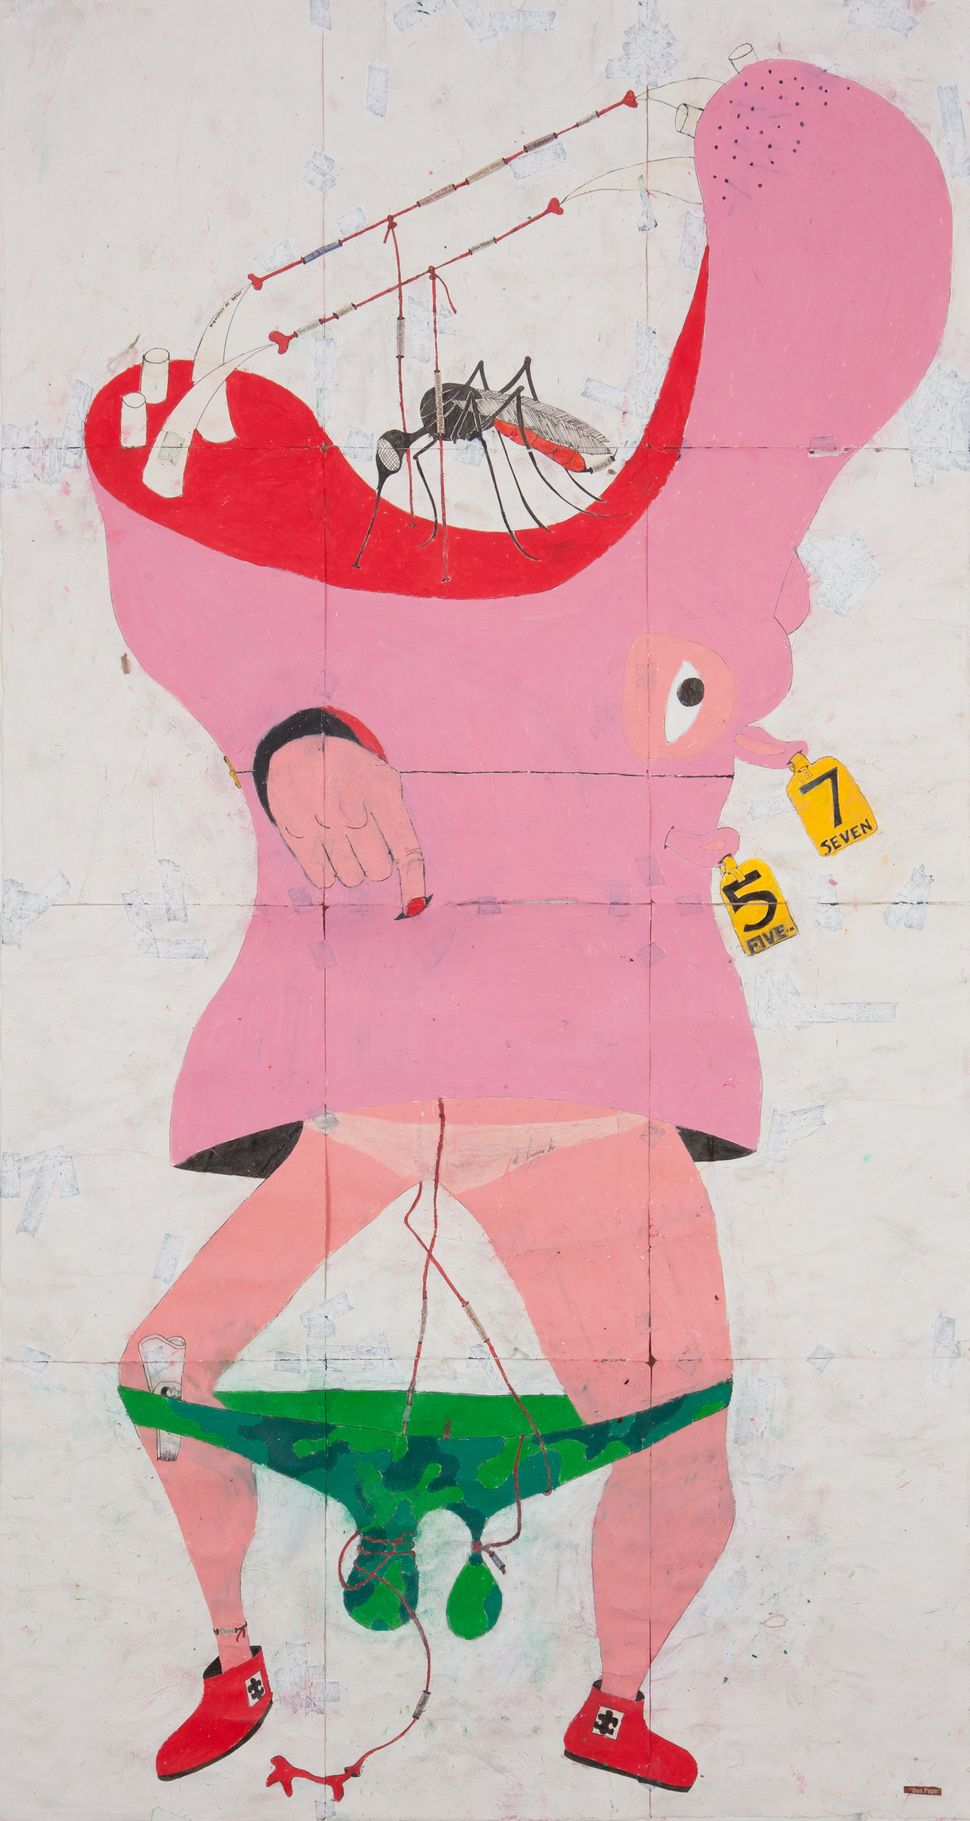 'Don Pepe', 2014 Ink, water-soluble wax pastel, tape, newspaper clippings and saliva on paper 46 1/2 x 24 3/4 inches (118.1 x